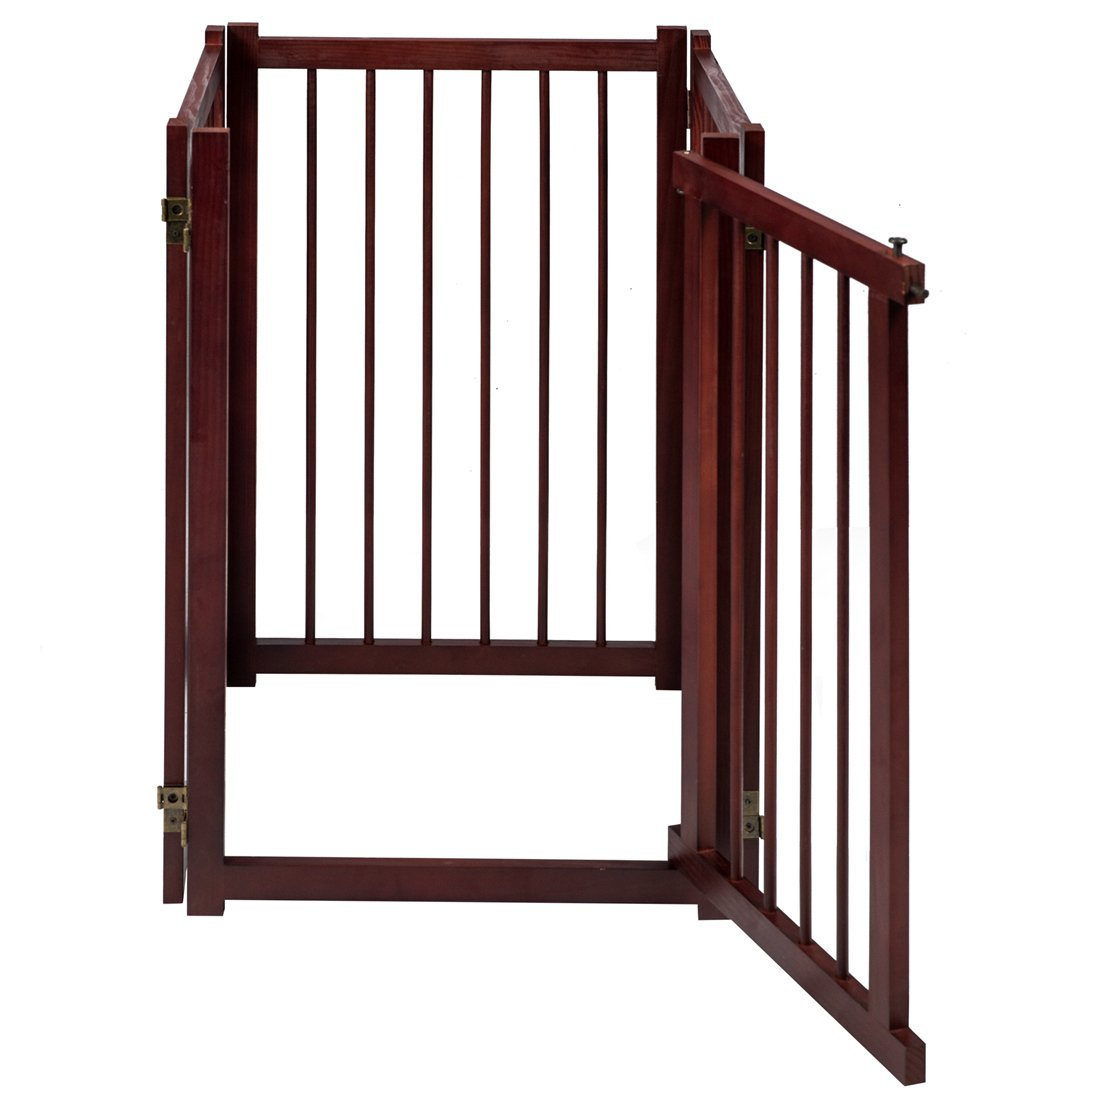 GOOD LIFE 81 Inch Wooden Pet Gate with Walk Through Door Adjustable Freestanding Fence Folding Dog Gate 4 Panel Coffee Color PET343 by GOOD LIFE USA (Image #4)